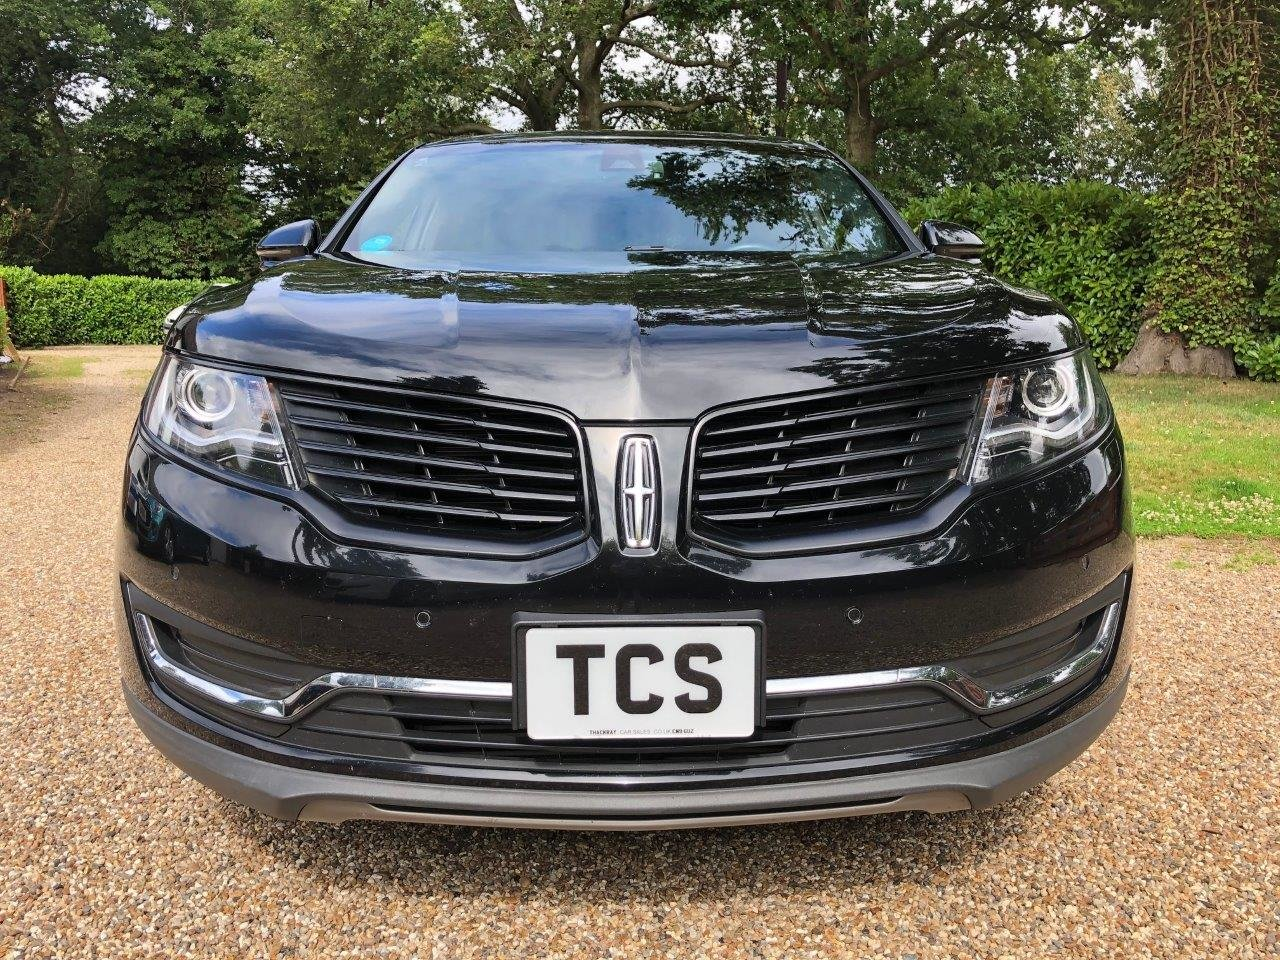 2019 19-plate Lincoln MKX 2.7i V6 EcoBoost AWD Automatic Resreve For Sale (picture 4 of 6)